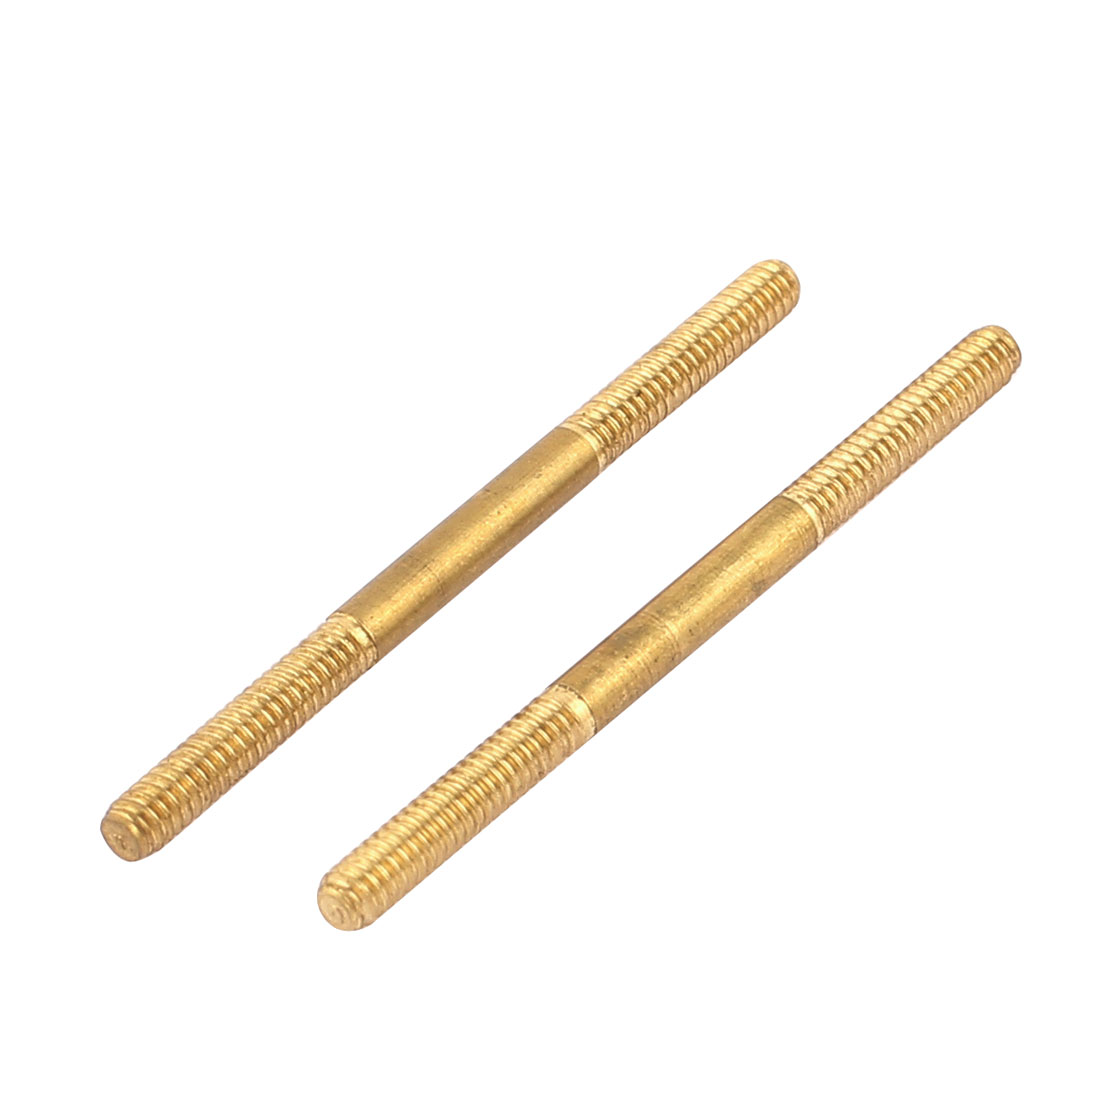 2pcs RC Airplane Parts 1.8mm Dia Thread Tight Adjustable Copper Push Rod 30mm Long